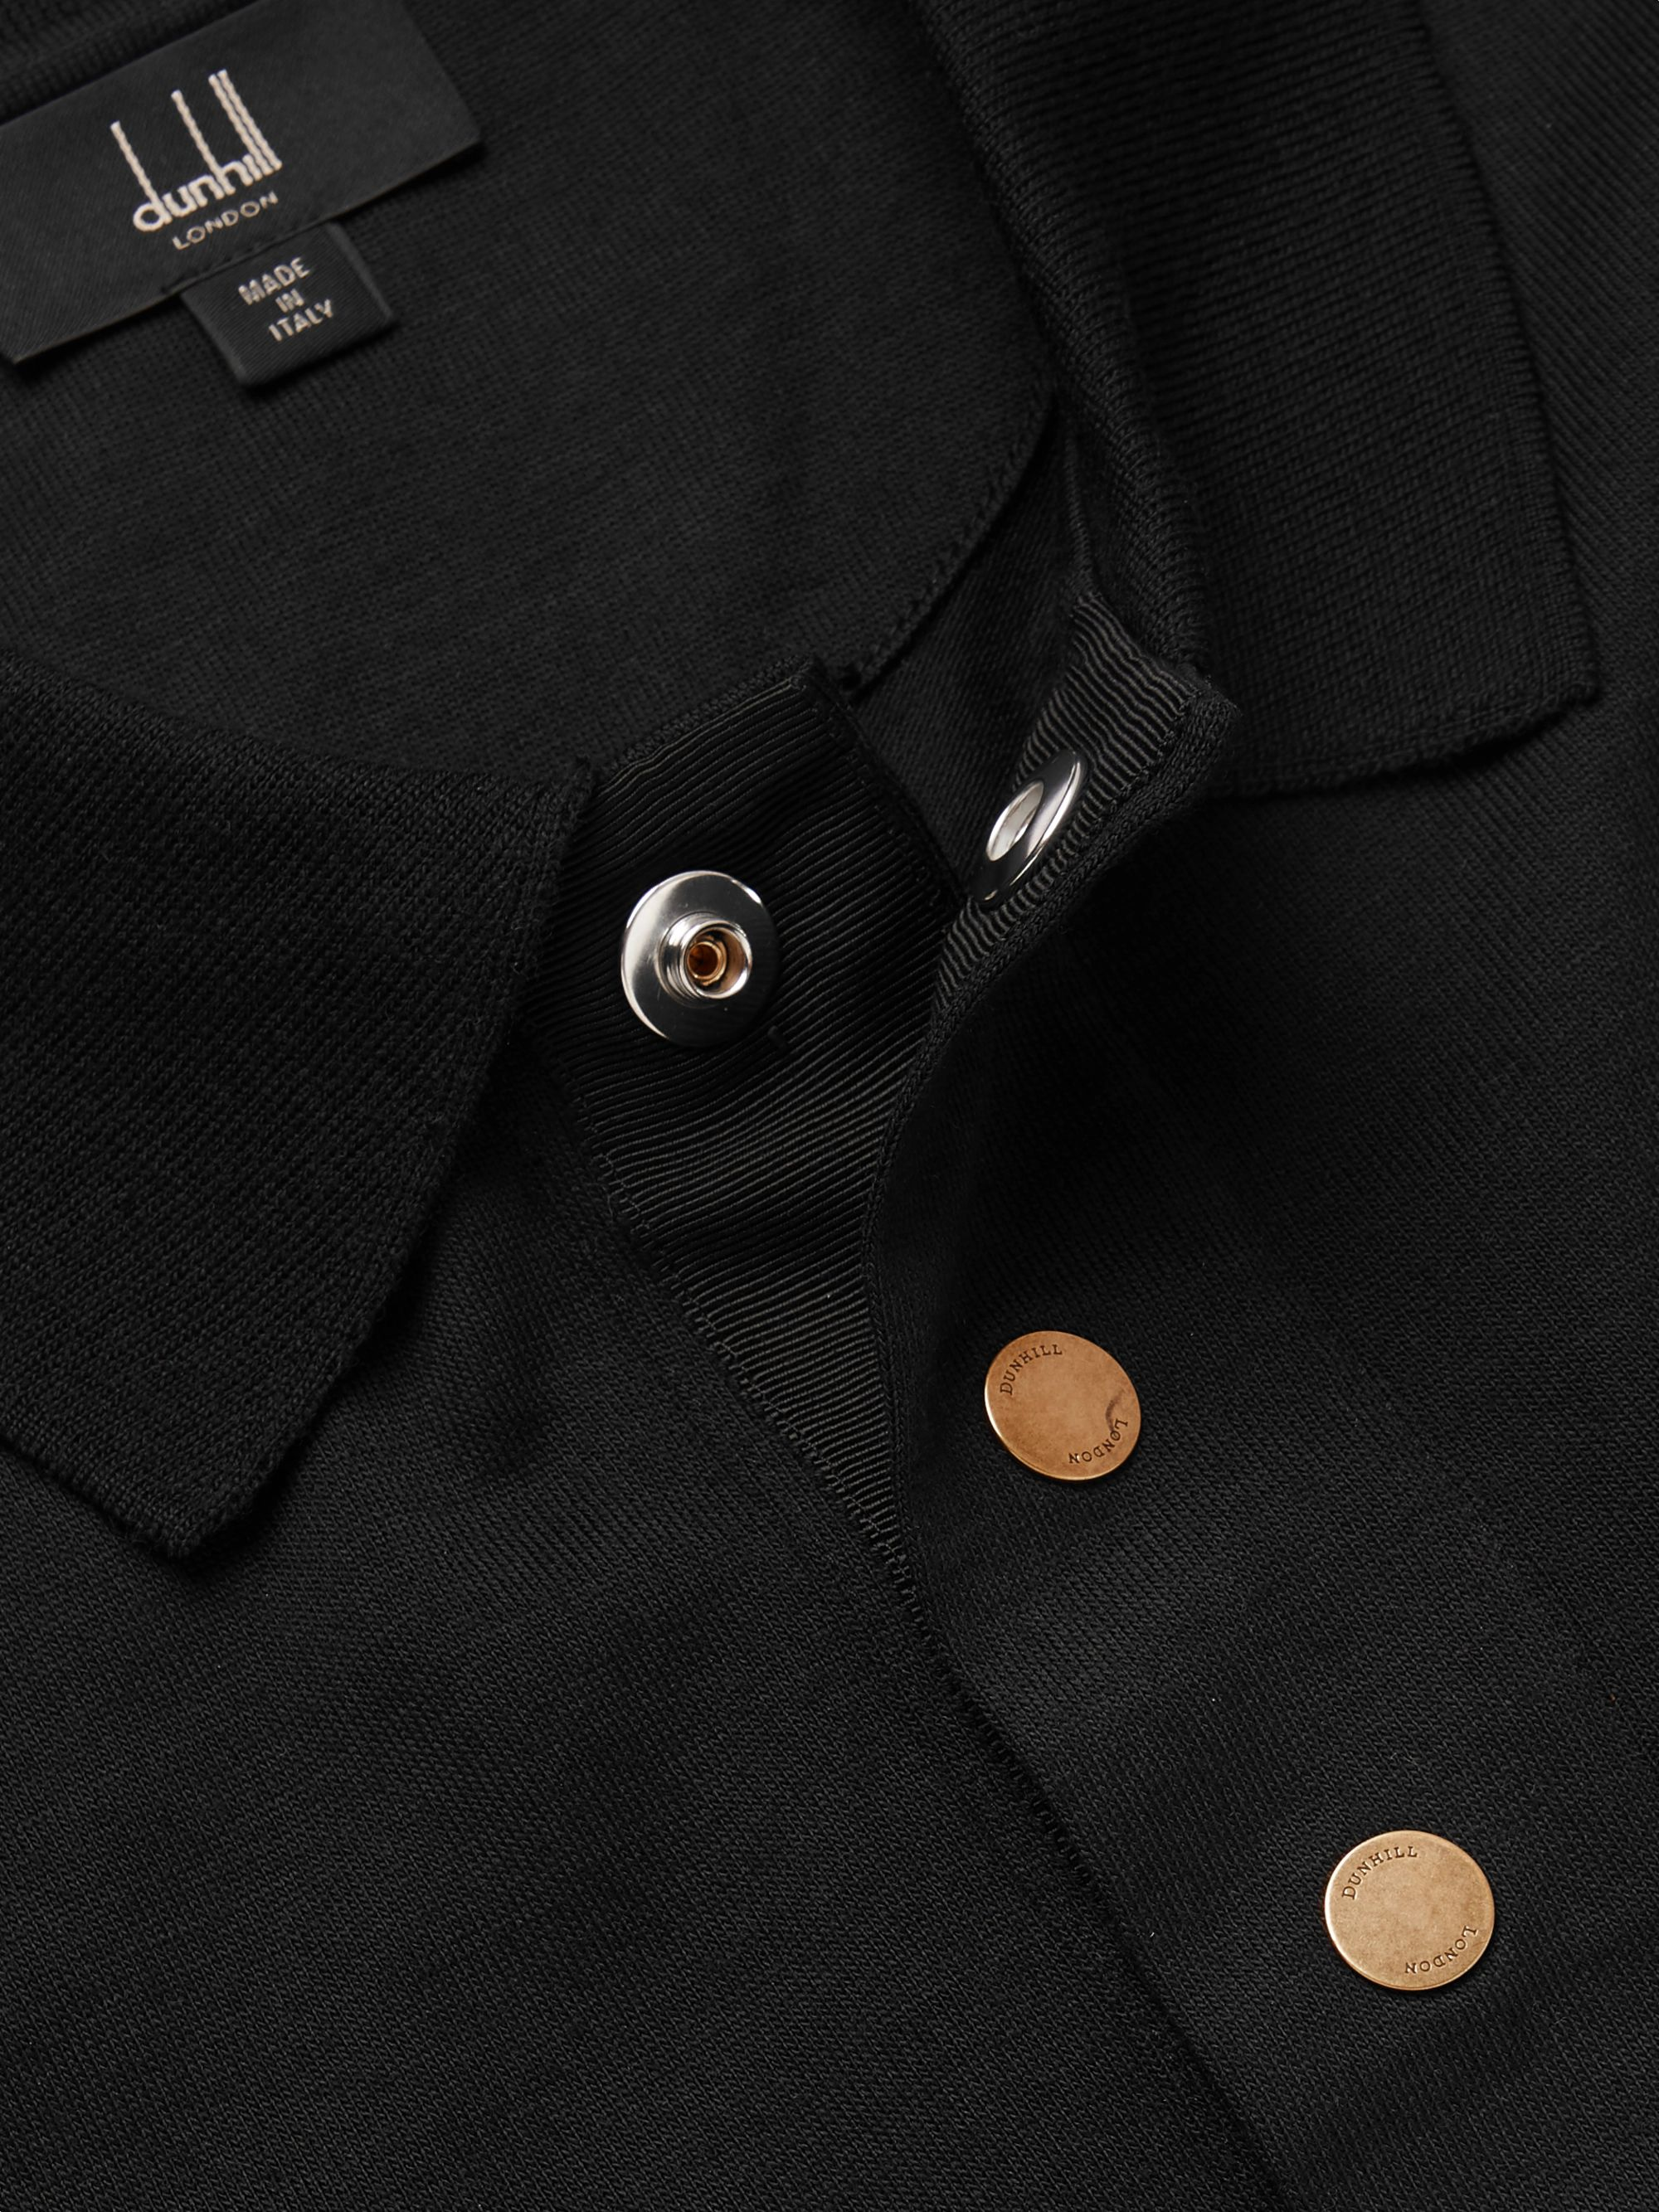 Dunhill Wool Polo Shirt